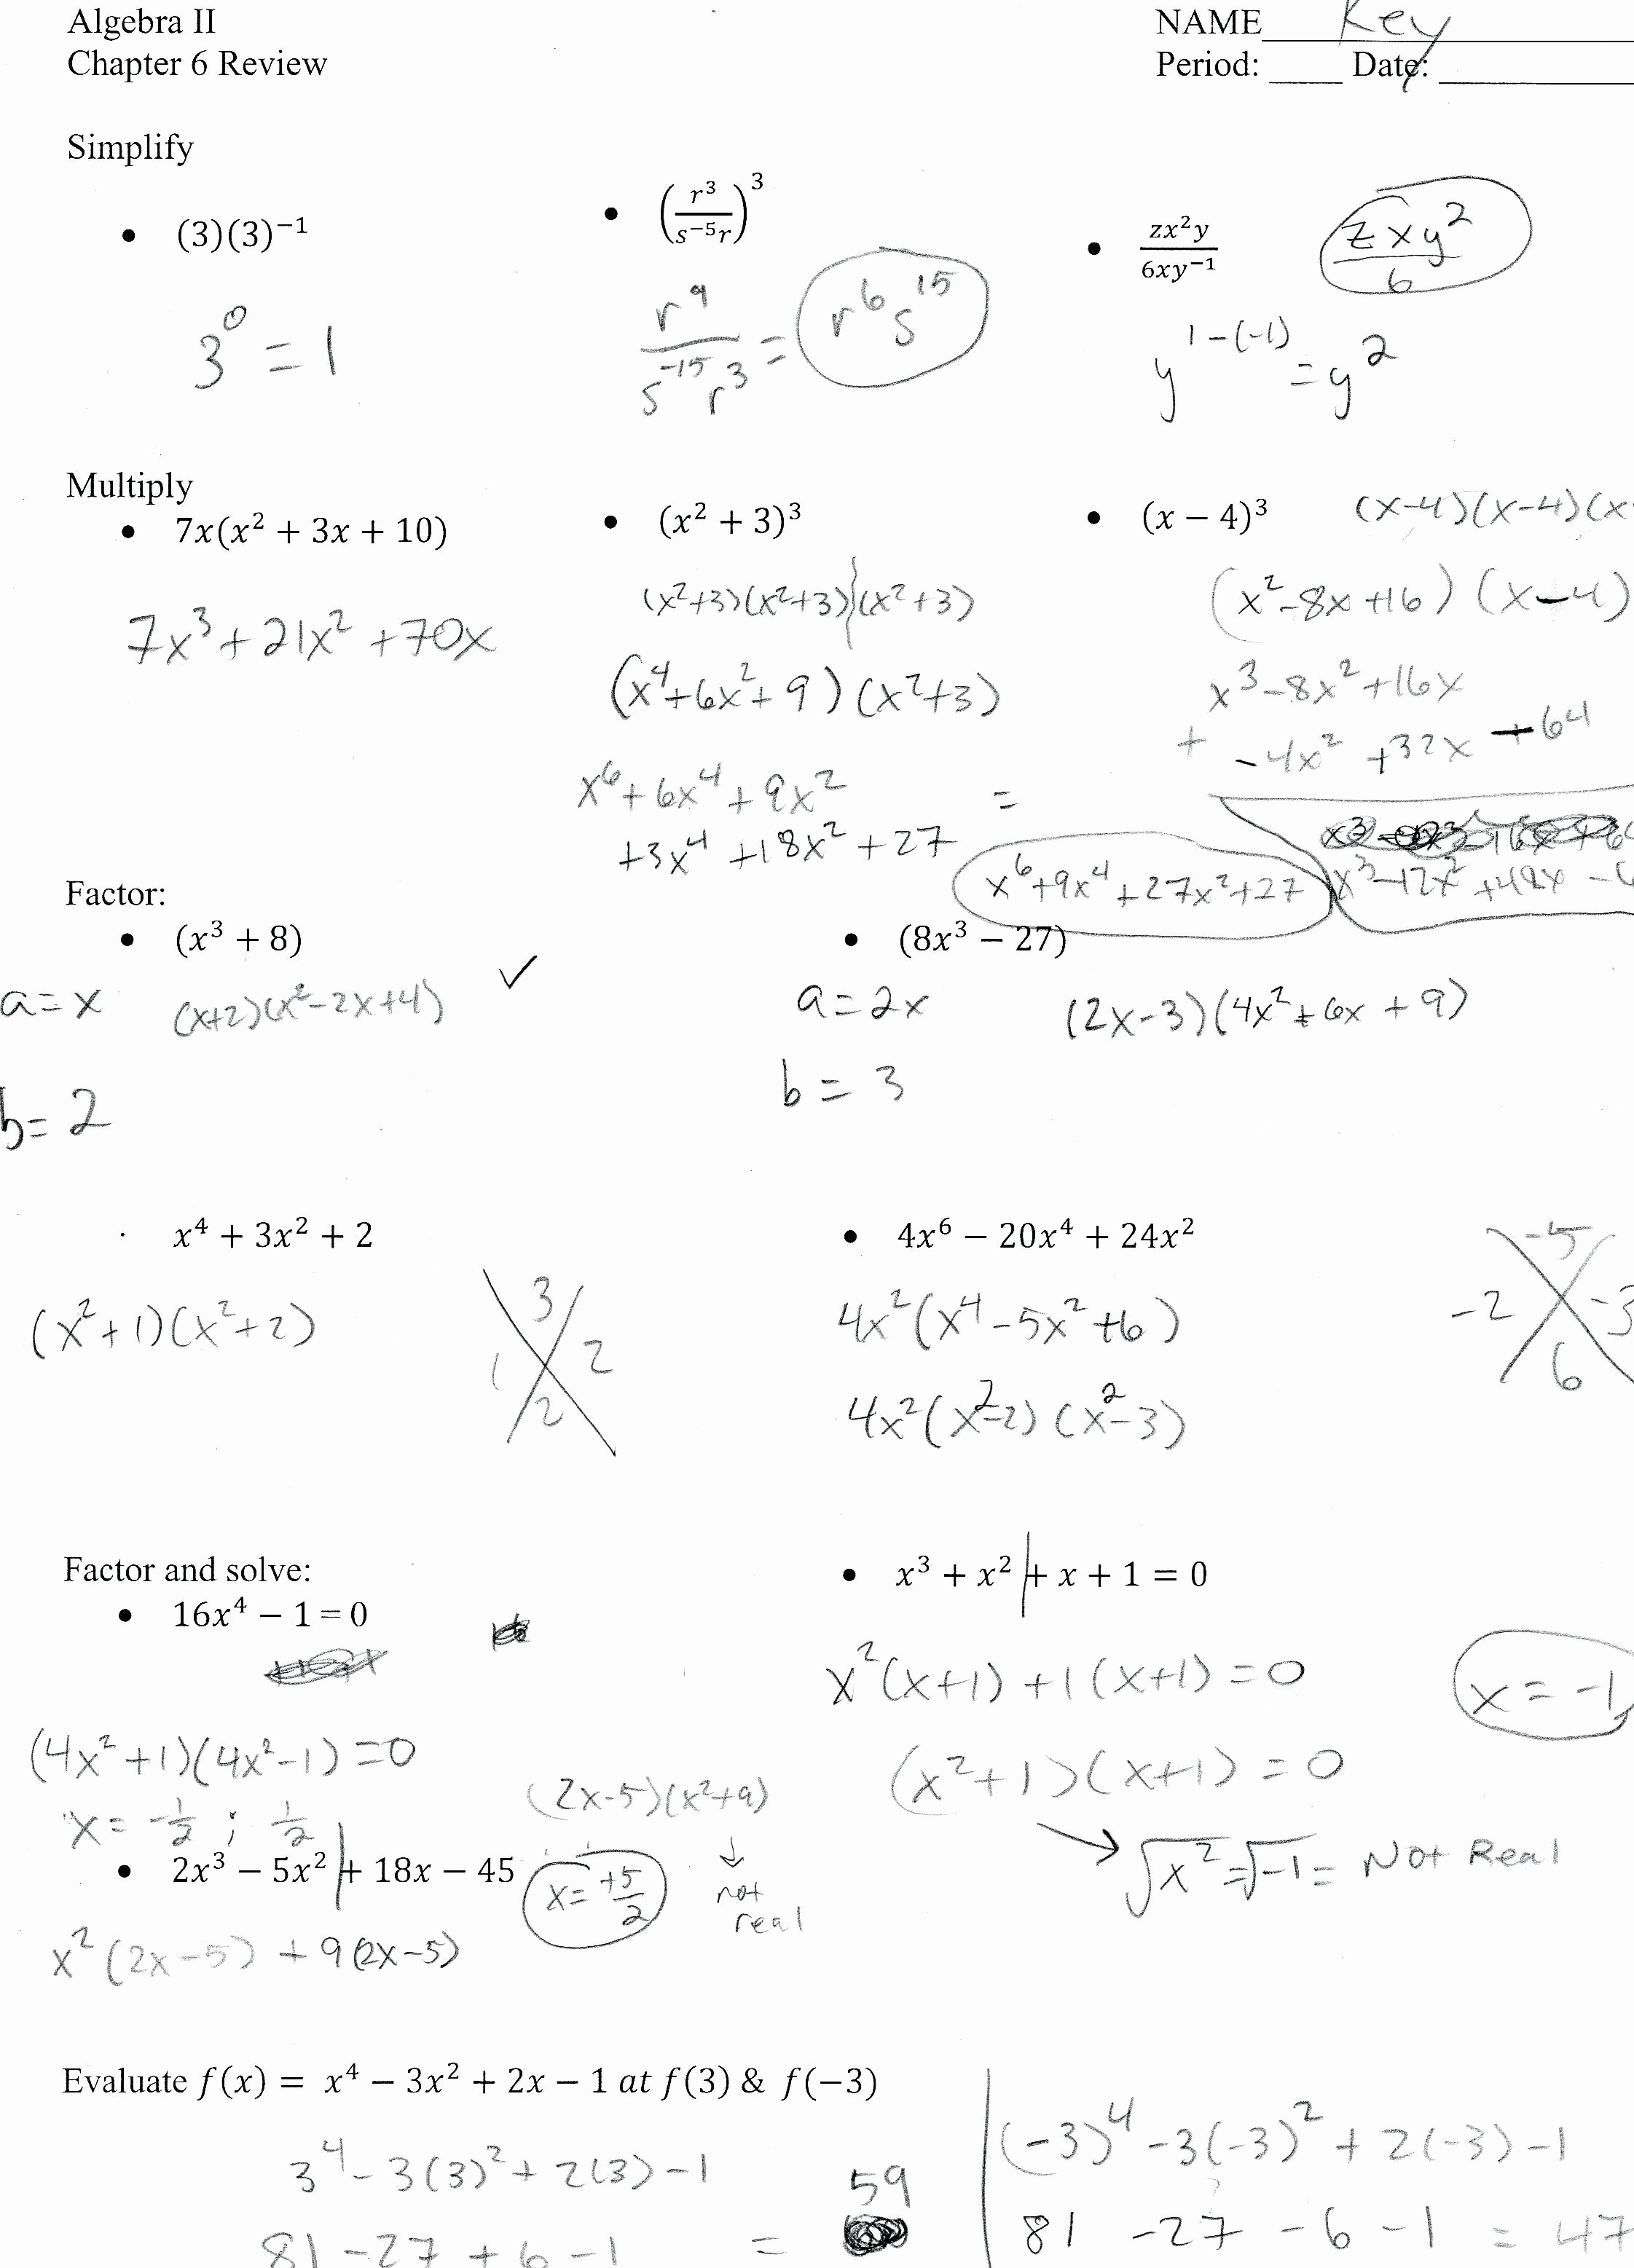 Algebra 2 Review Worksheet Fresh Worksheets Algebra 2 Review Worksheet Cheatslist Free